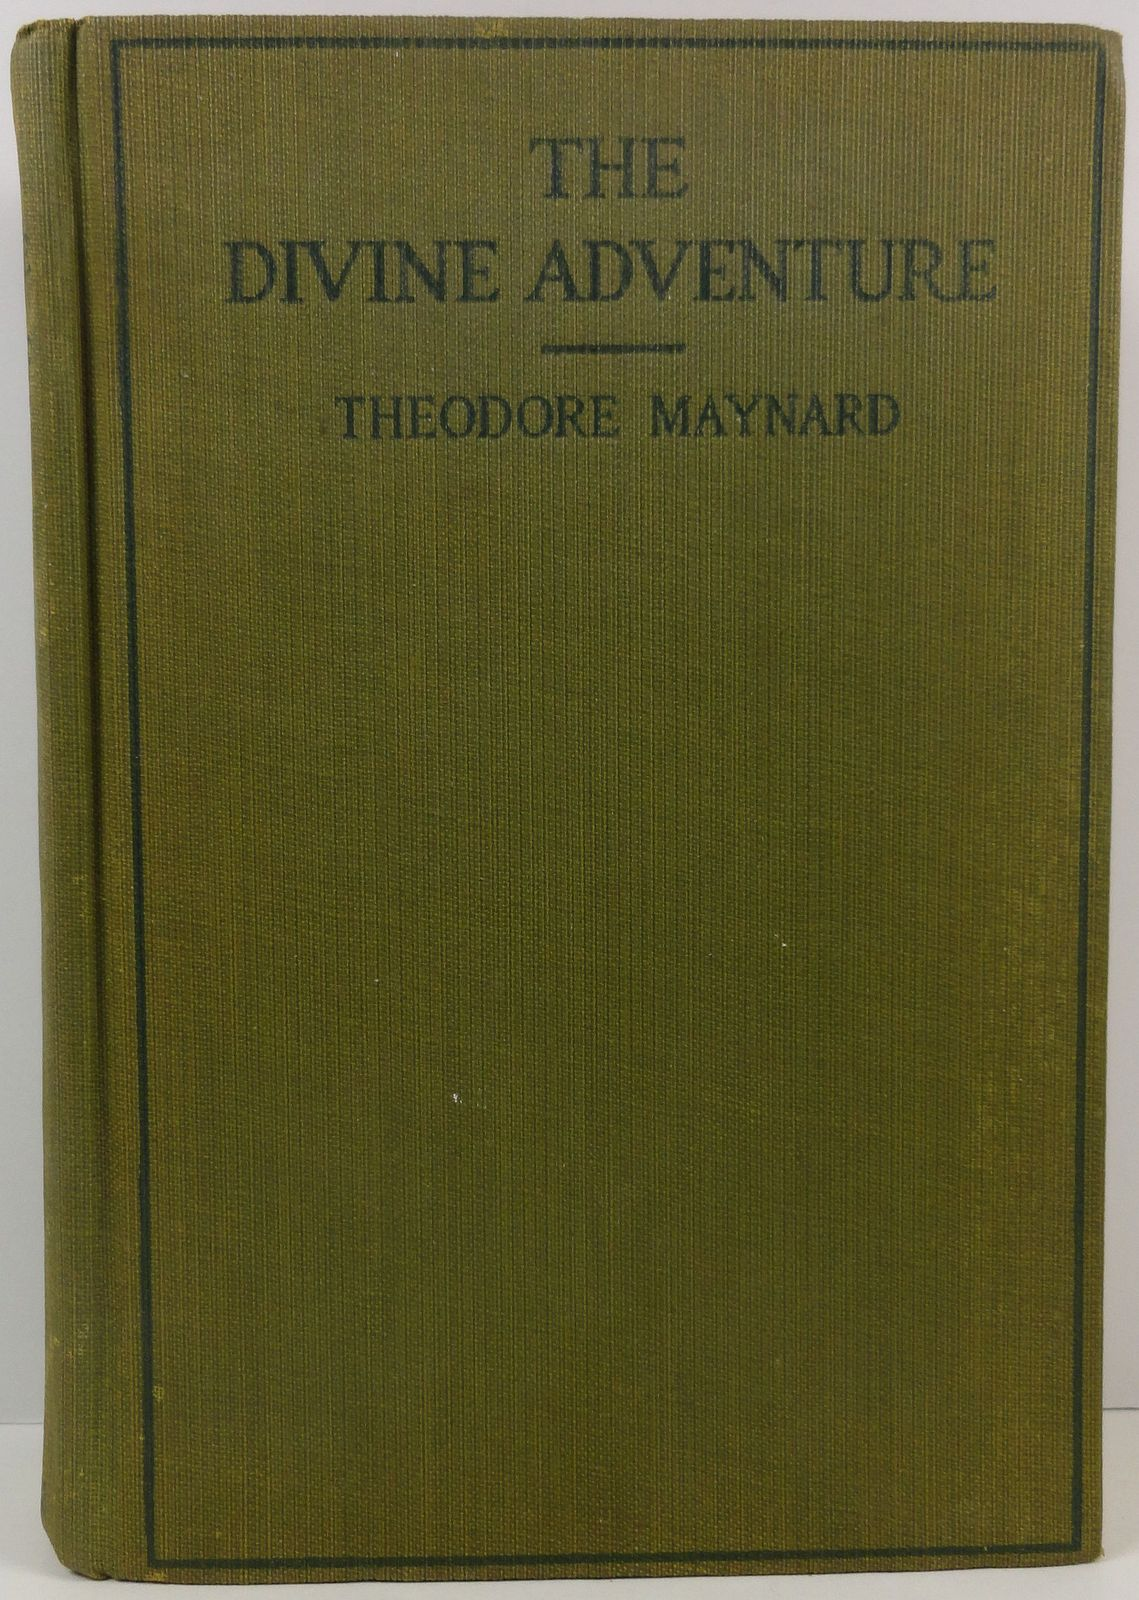 Primary image for The Divine Adventure Theodore Maynard 1921 Frederick Stokes